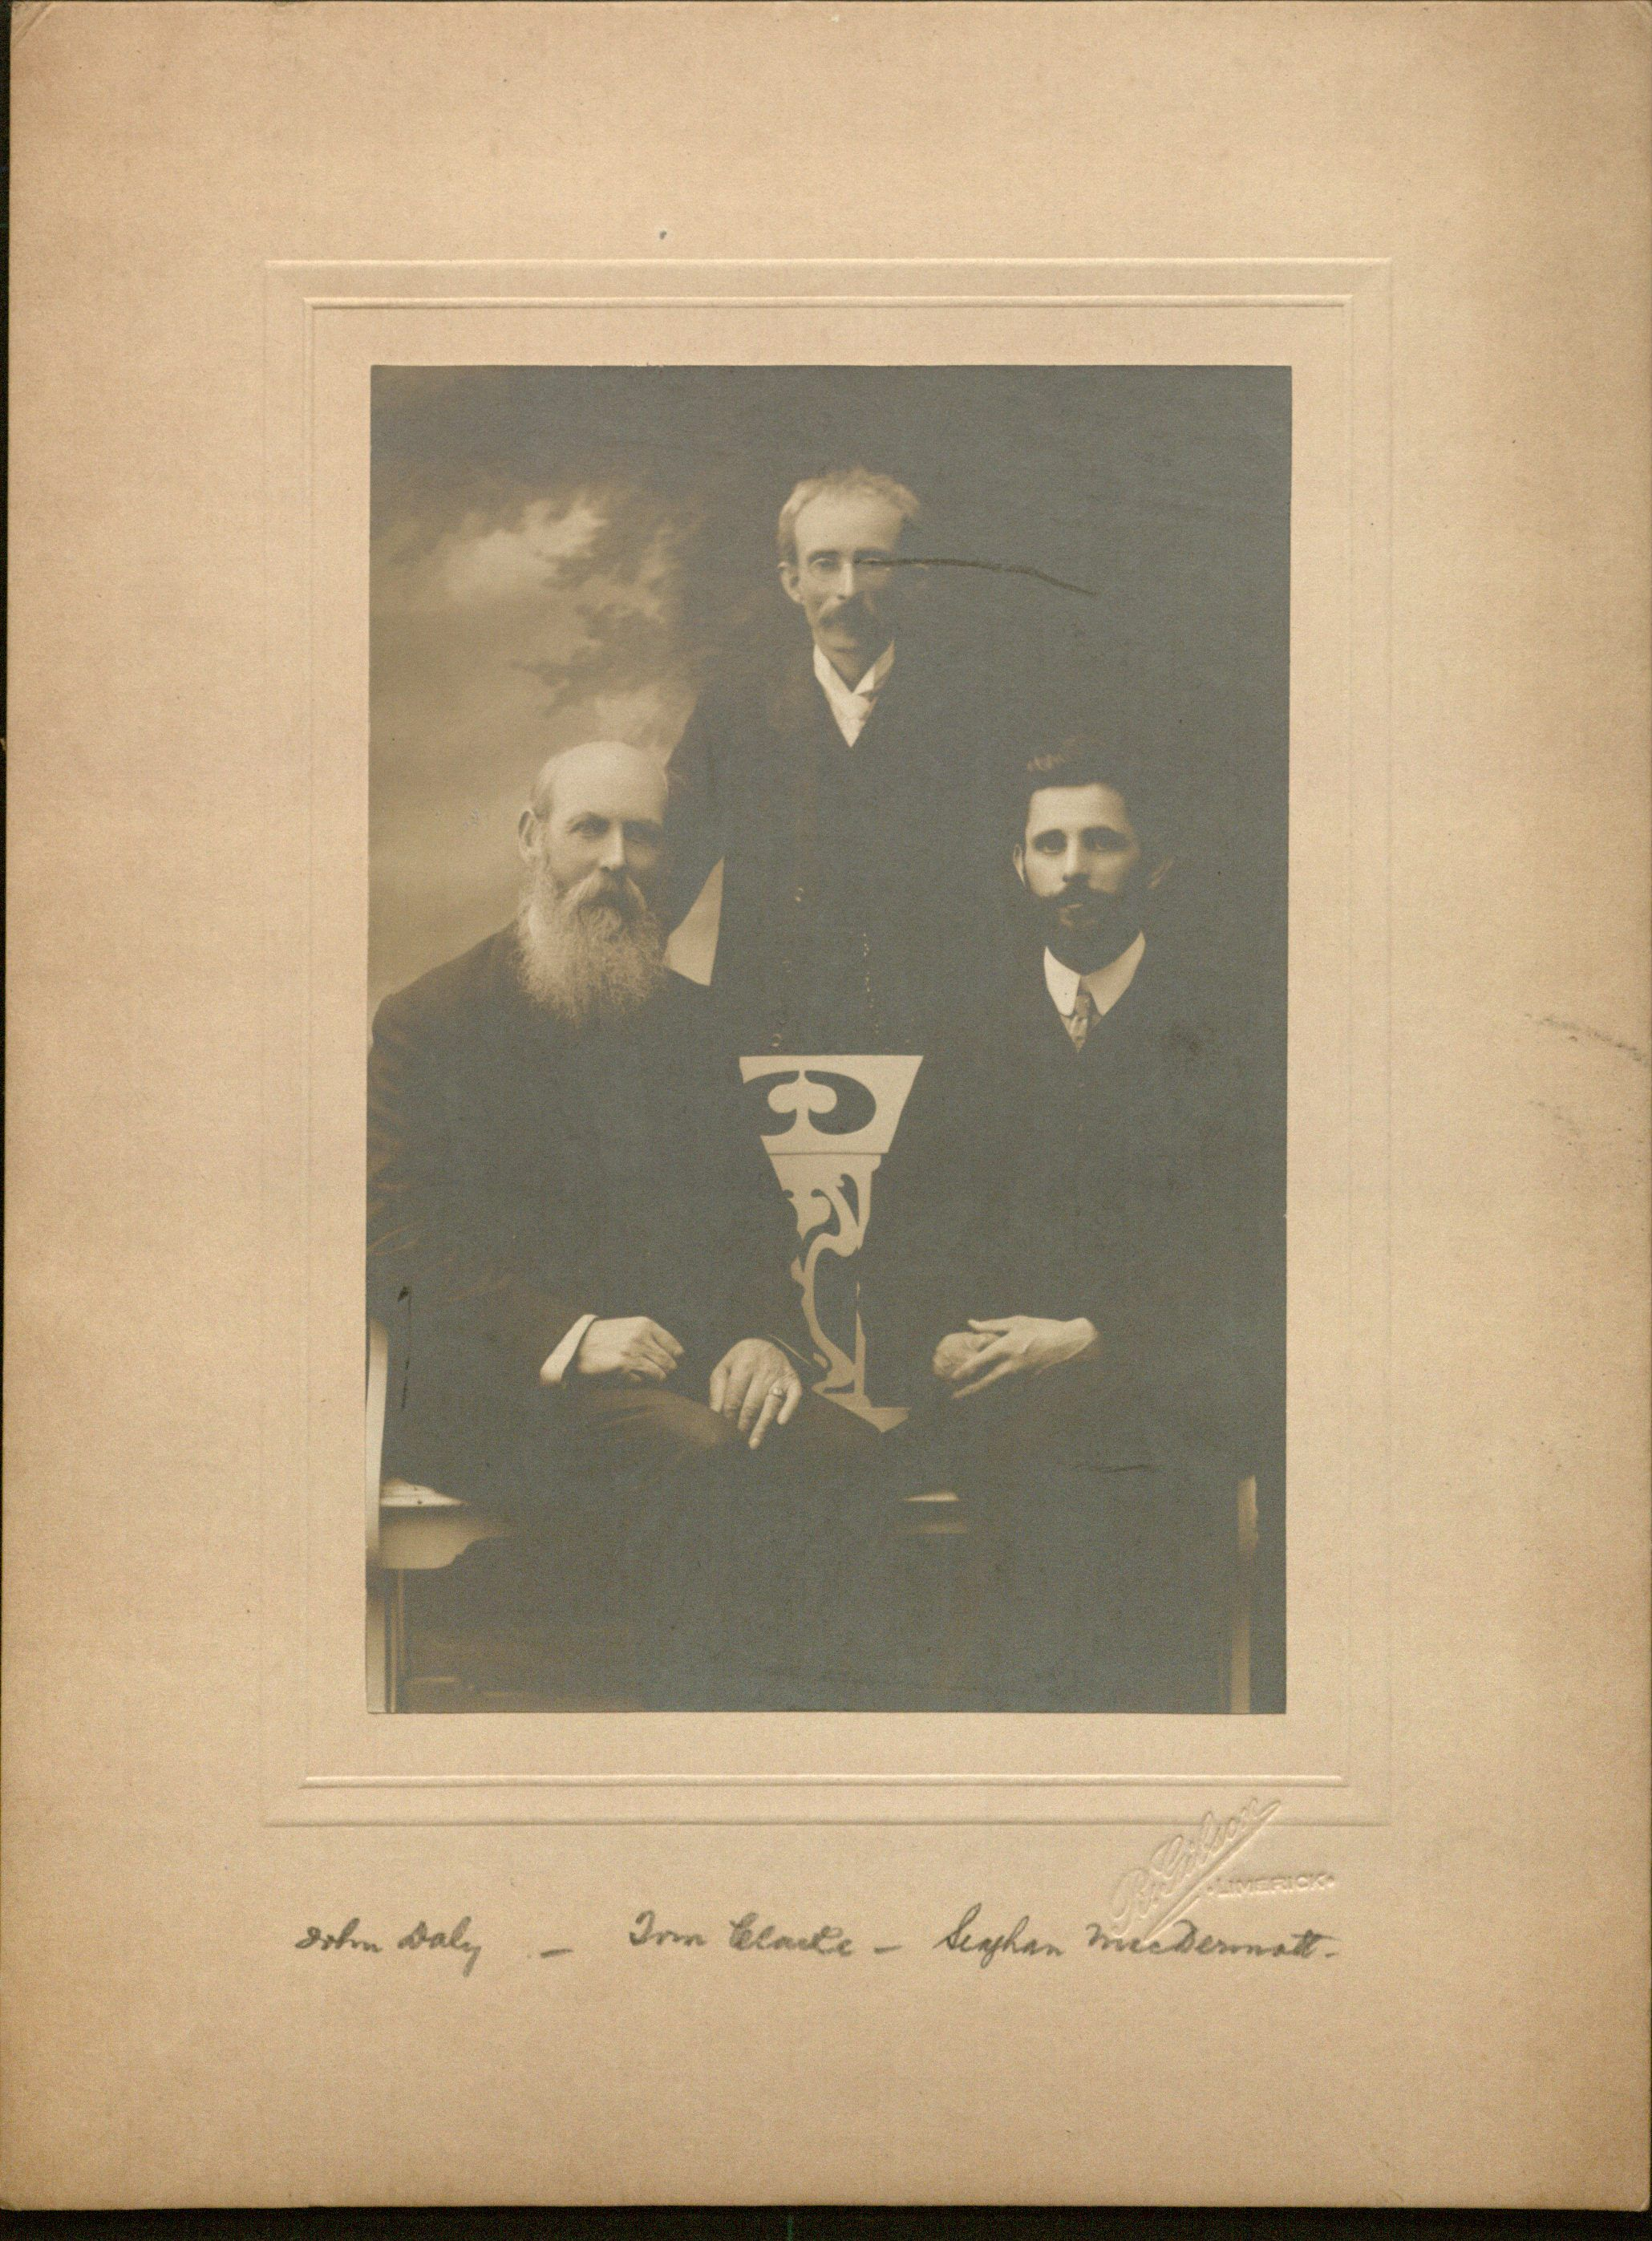 Photograph of John Daly, Tom Clarke, and Seaghan MacDermott [Seán MacDiarmada]